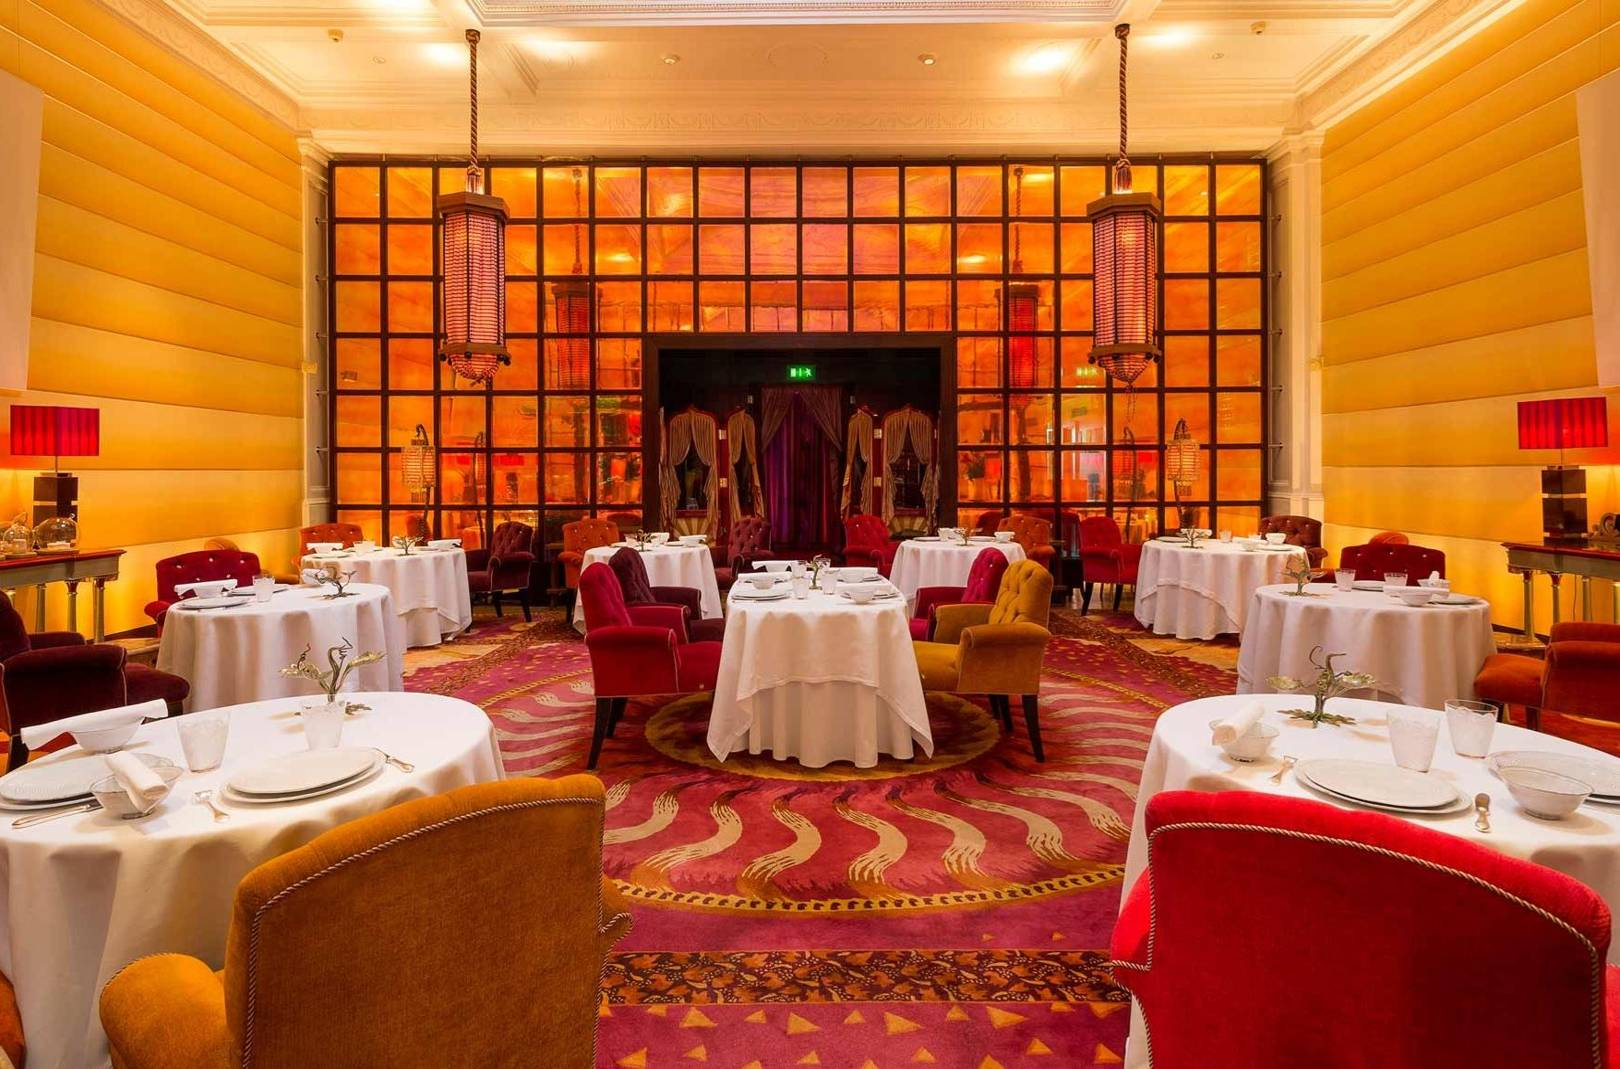 8 of the most luxurious restaurants in london | british gq